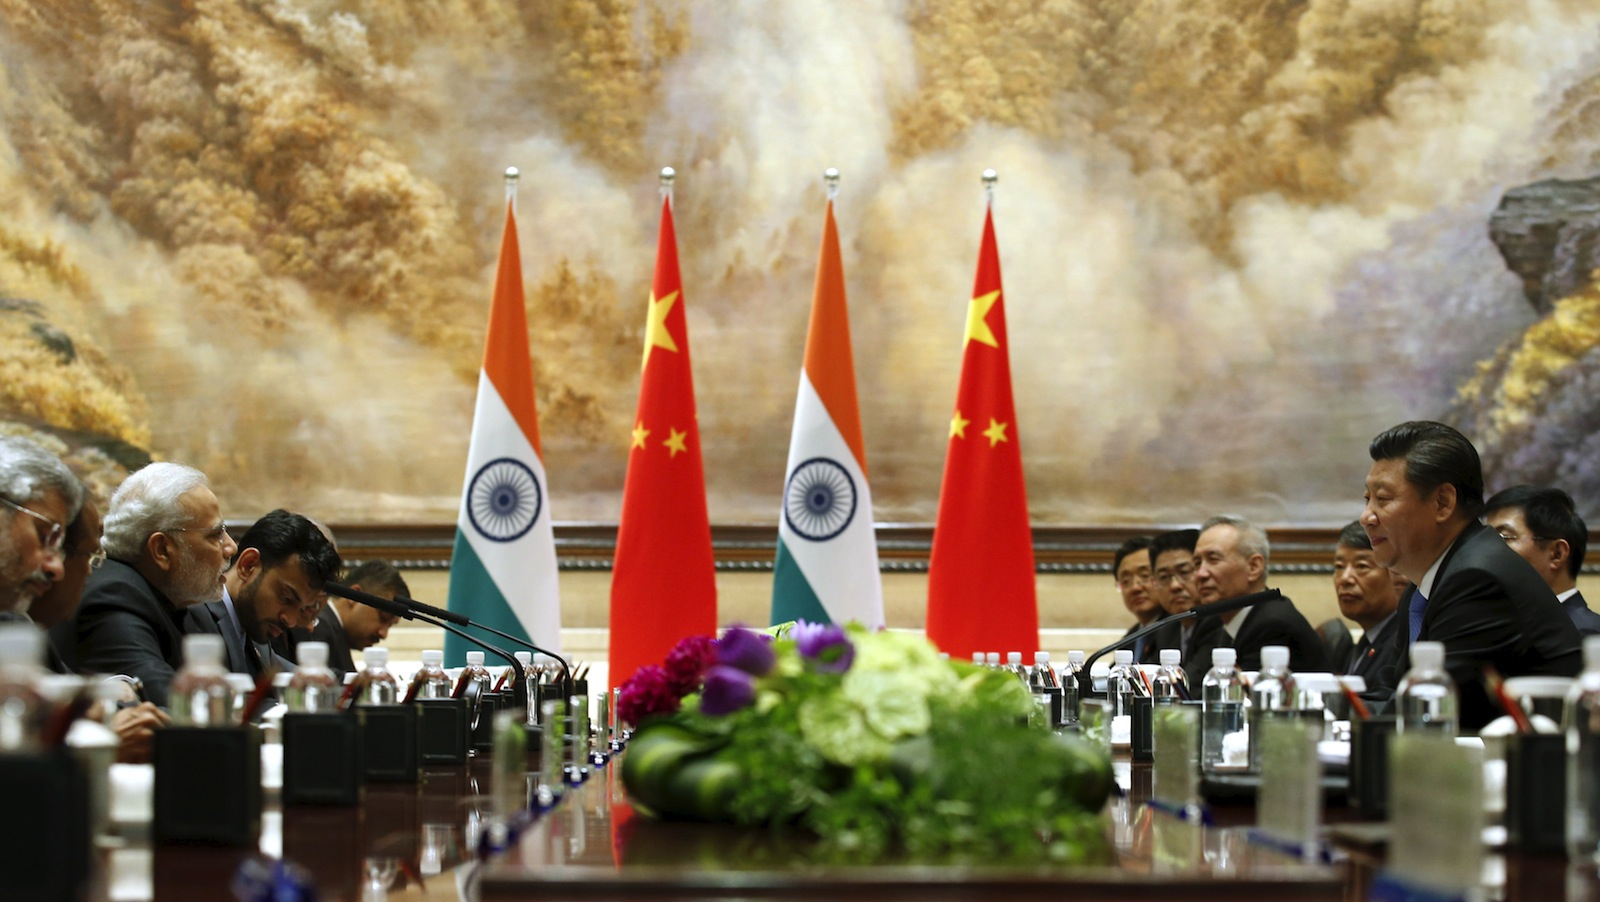 Indian Prime Minister Narendra Modi (2nd from L) and Chinese President Xi Jinping hold a meeting in Xian, Shaanxi province, China, May 14, 2015.